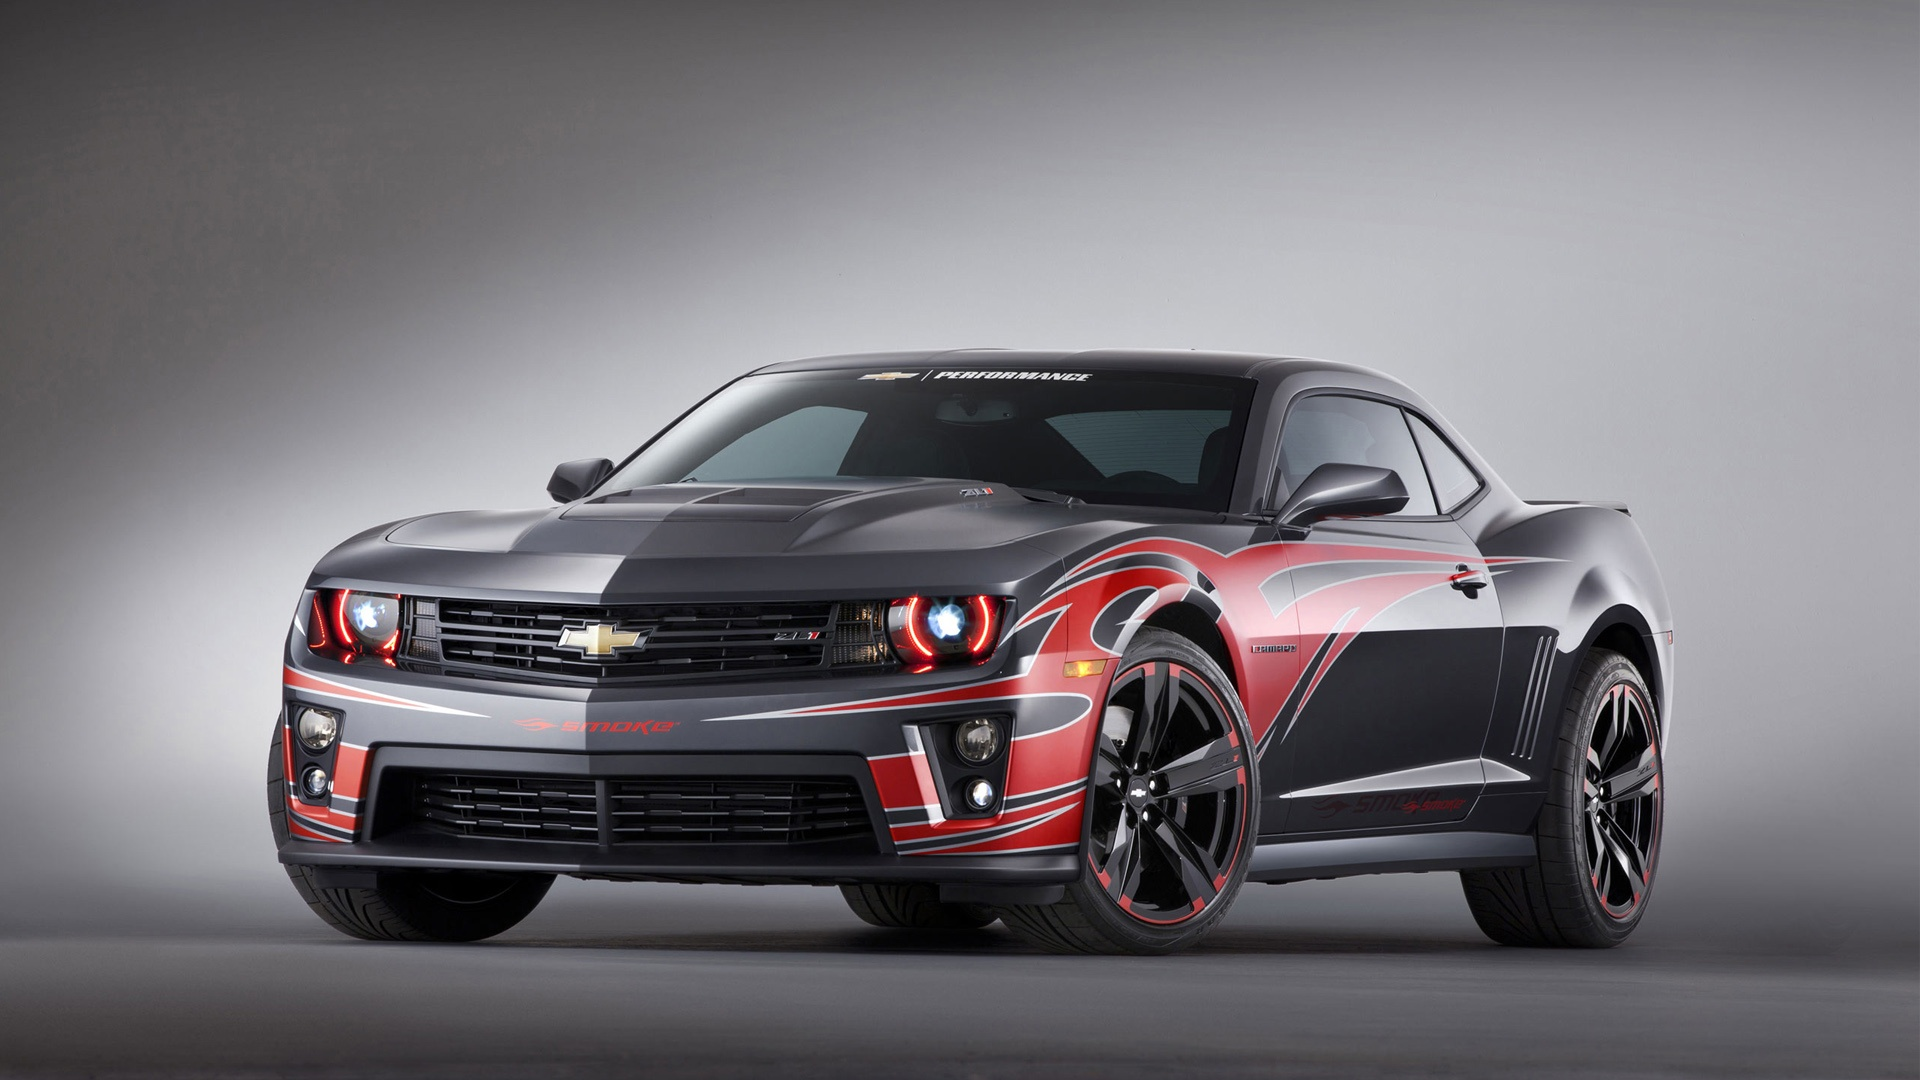 Description chevrolet camaro zl1 wallpaper is a hi res wallpaper for